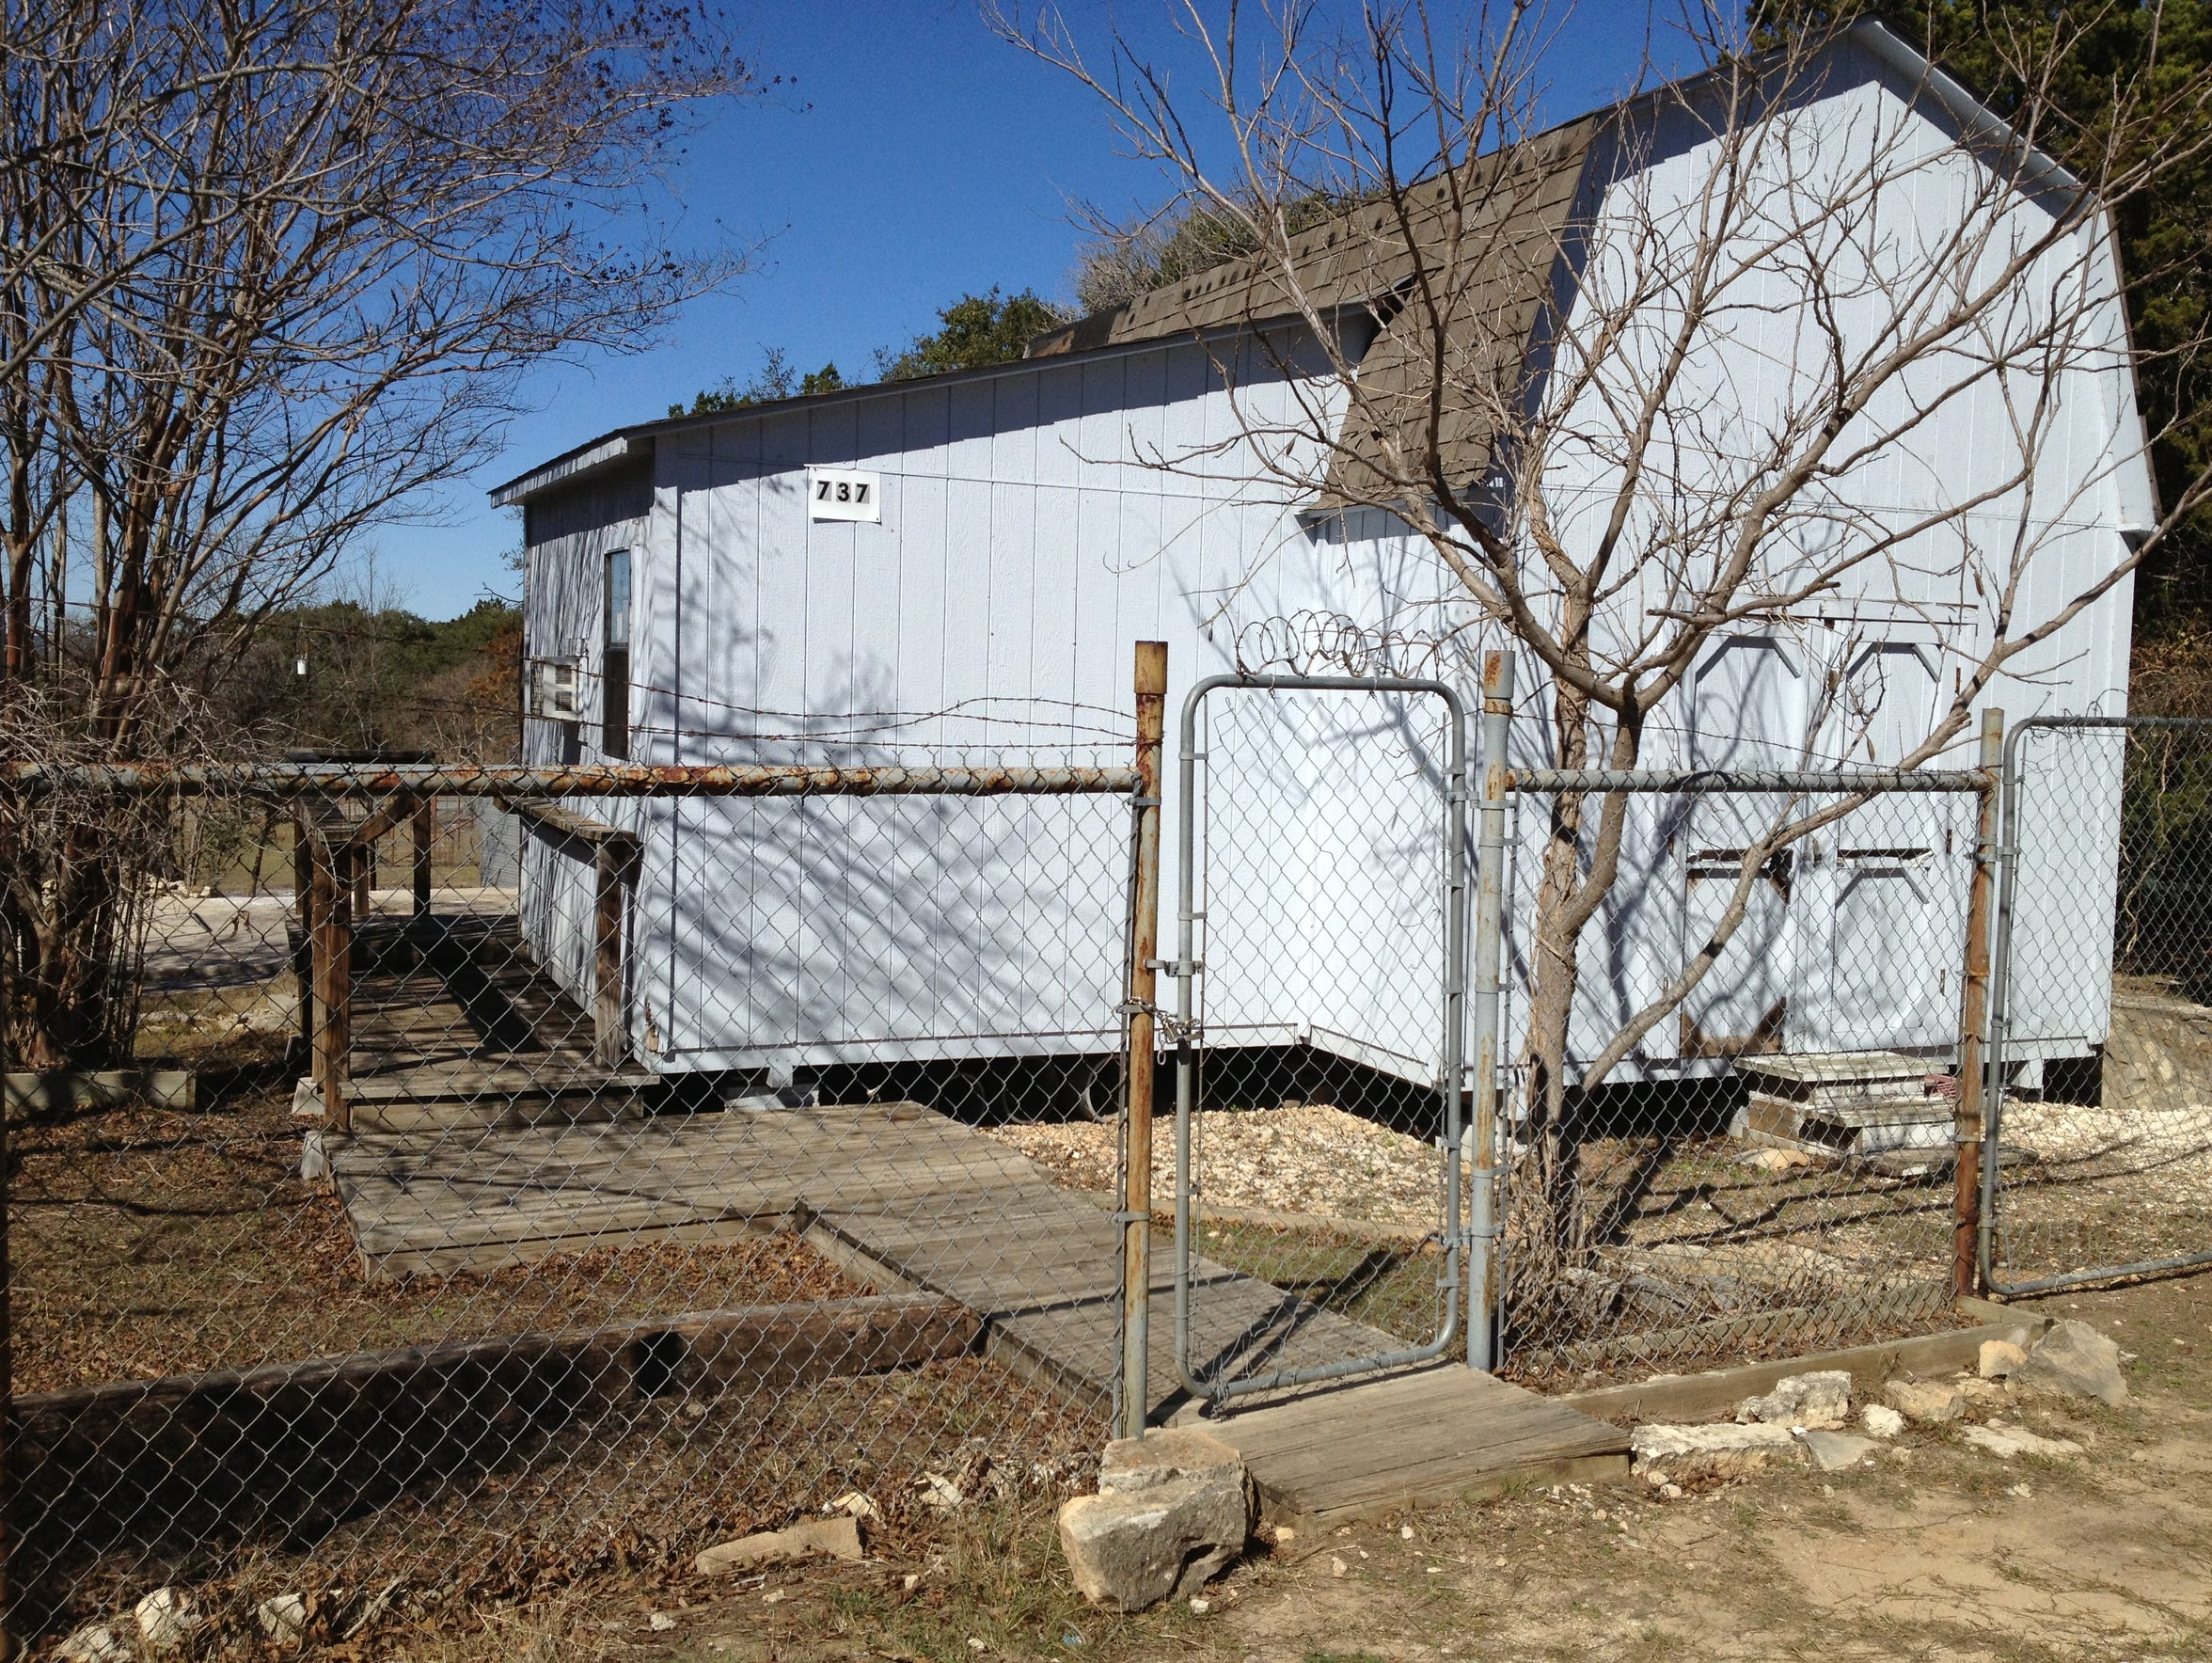 Felix Vail was living in this storage shed in Canyon